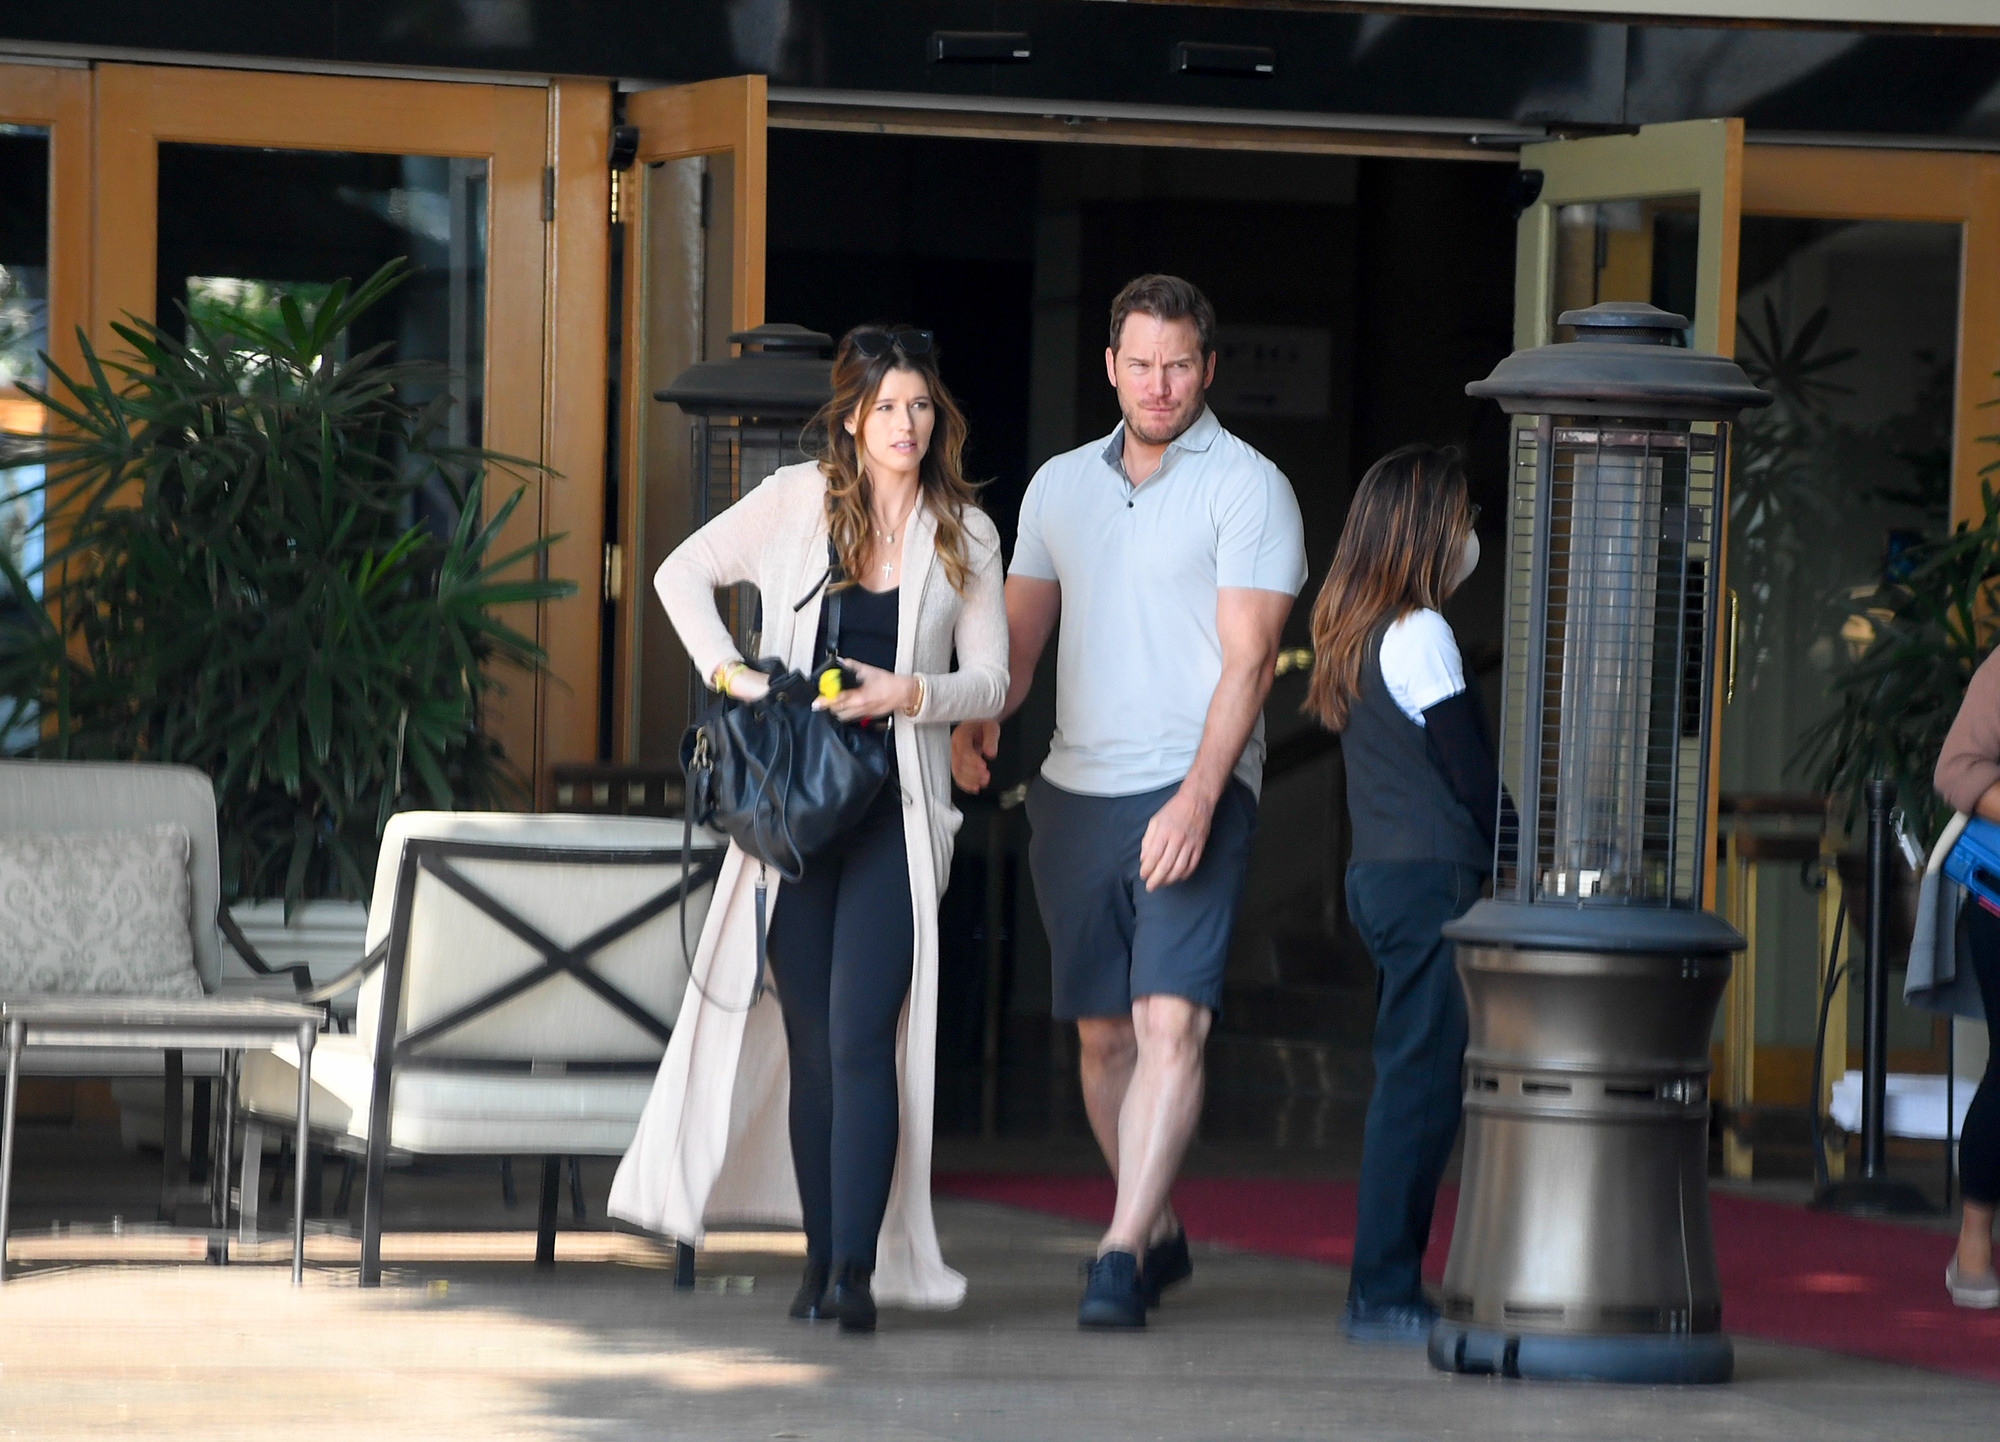 Chris Pratt and Katherine Schwarzenegger: A Timeline of Their Relationship - The Jurassic World: Fallen Kingdom actor met up with his potential future father-in-law in November 2018 when he and Katherine had breakfast with Arnold Schwarzenegger and the Terminator star's longtime girlfriend, Heather Milligan .